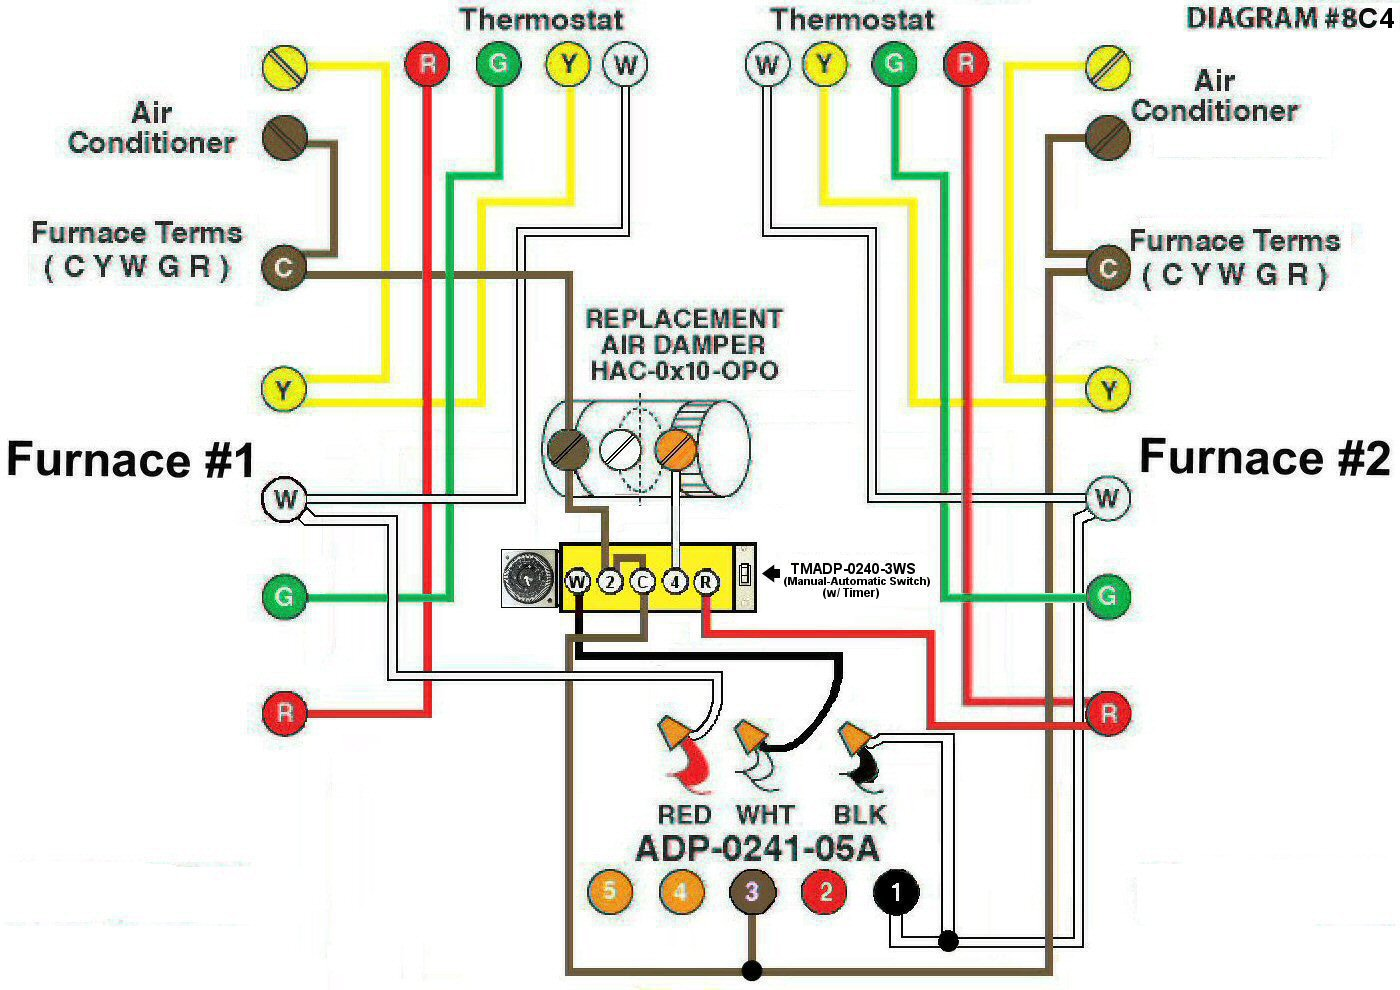 nordyne furnace wiring diagram justanswer hvac 4oyn3 with Electric Furnace Sequencer Schematic on Intertherm Model E1eb 015ha Furnace Wiring Diagram also Nordyne Air Handler Wiring Diagram likewise Nordyne Furnace Wiring Diagram E2eb 012ha together with Intertherm Furnace Parts Diagram further Intertherm Furnace Parts Diagram.